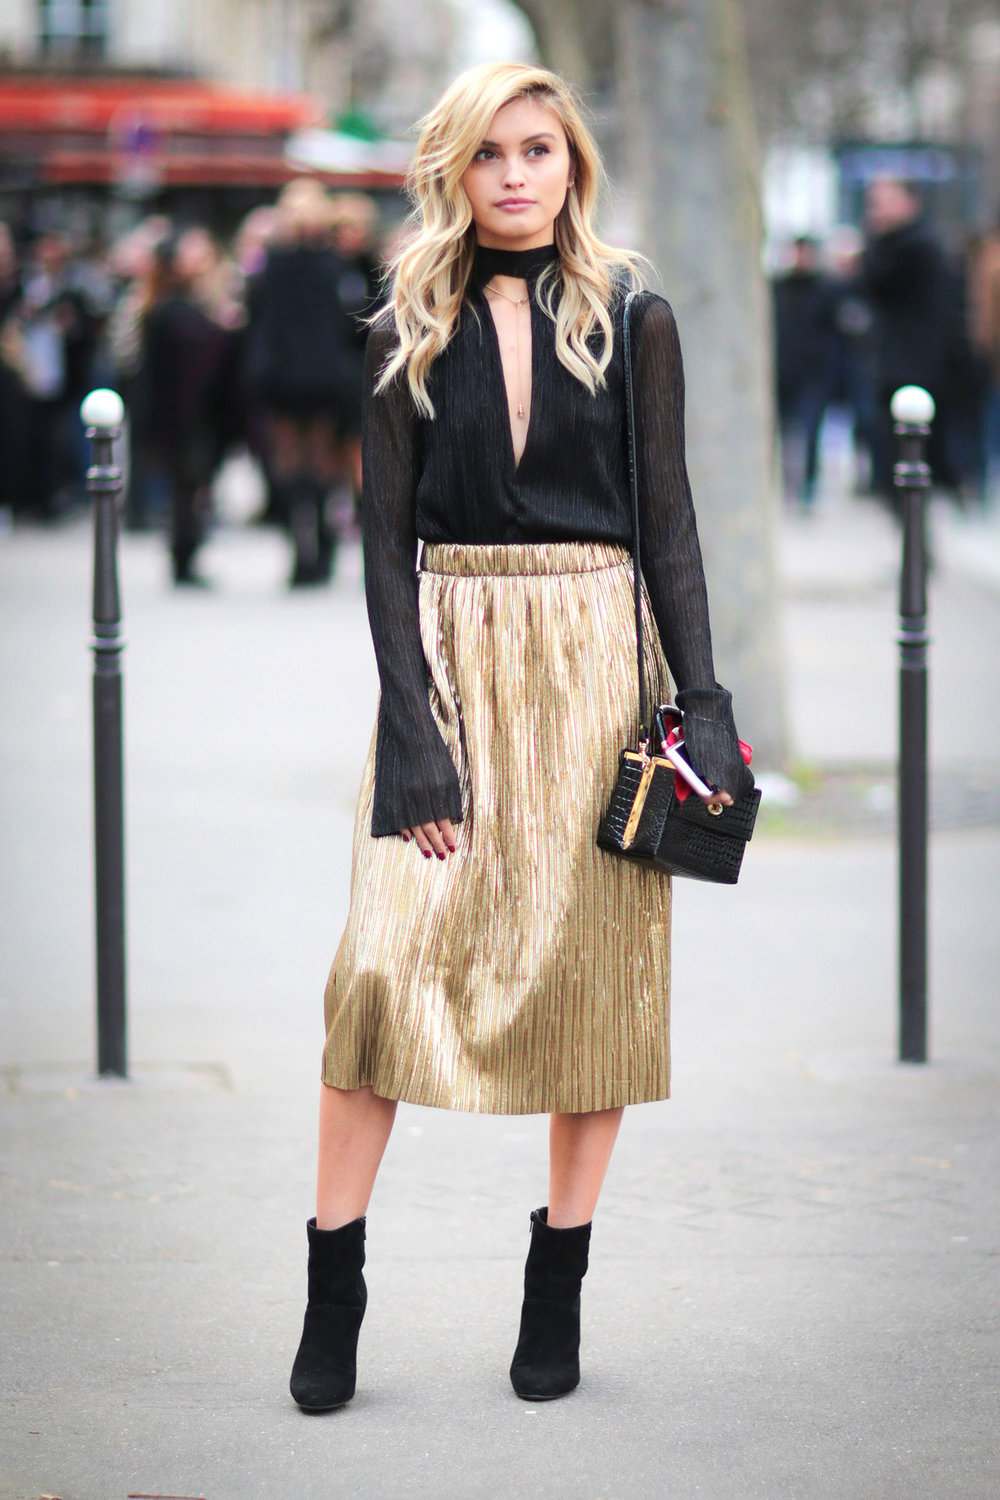 o-tan-midi-skirt-black-top-blouse-black-bag-blonde-black-shoe-booties-pleat-metallic-howtowear-fashion-style-outfit-fall-winter-holiday-dinner.jpg